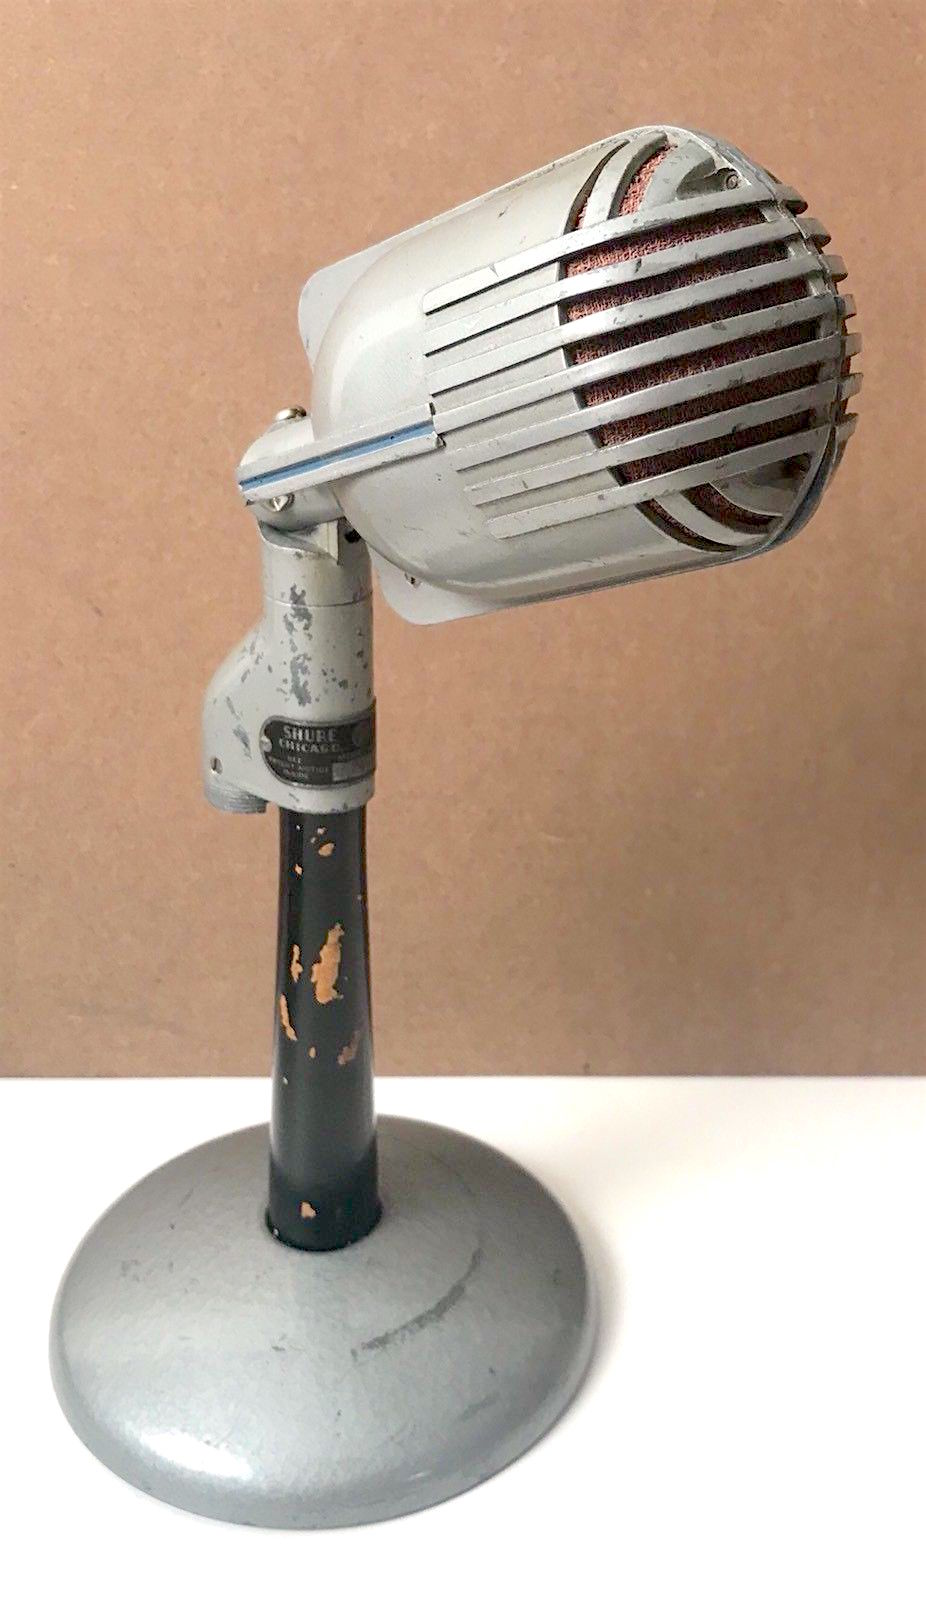 Shure Brothers, Inc., est. 1925